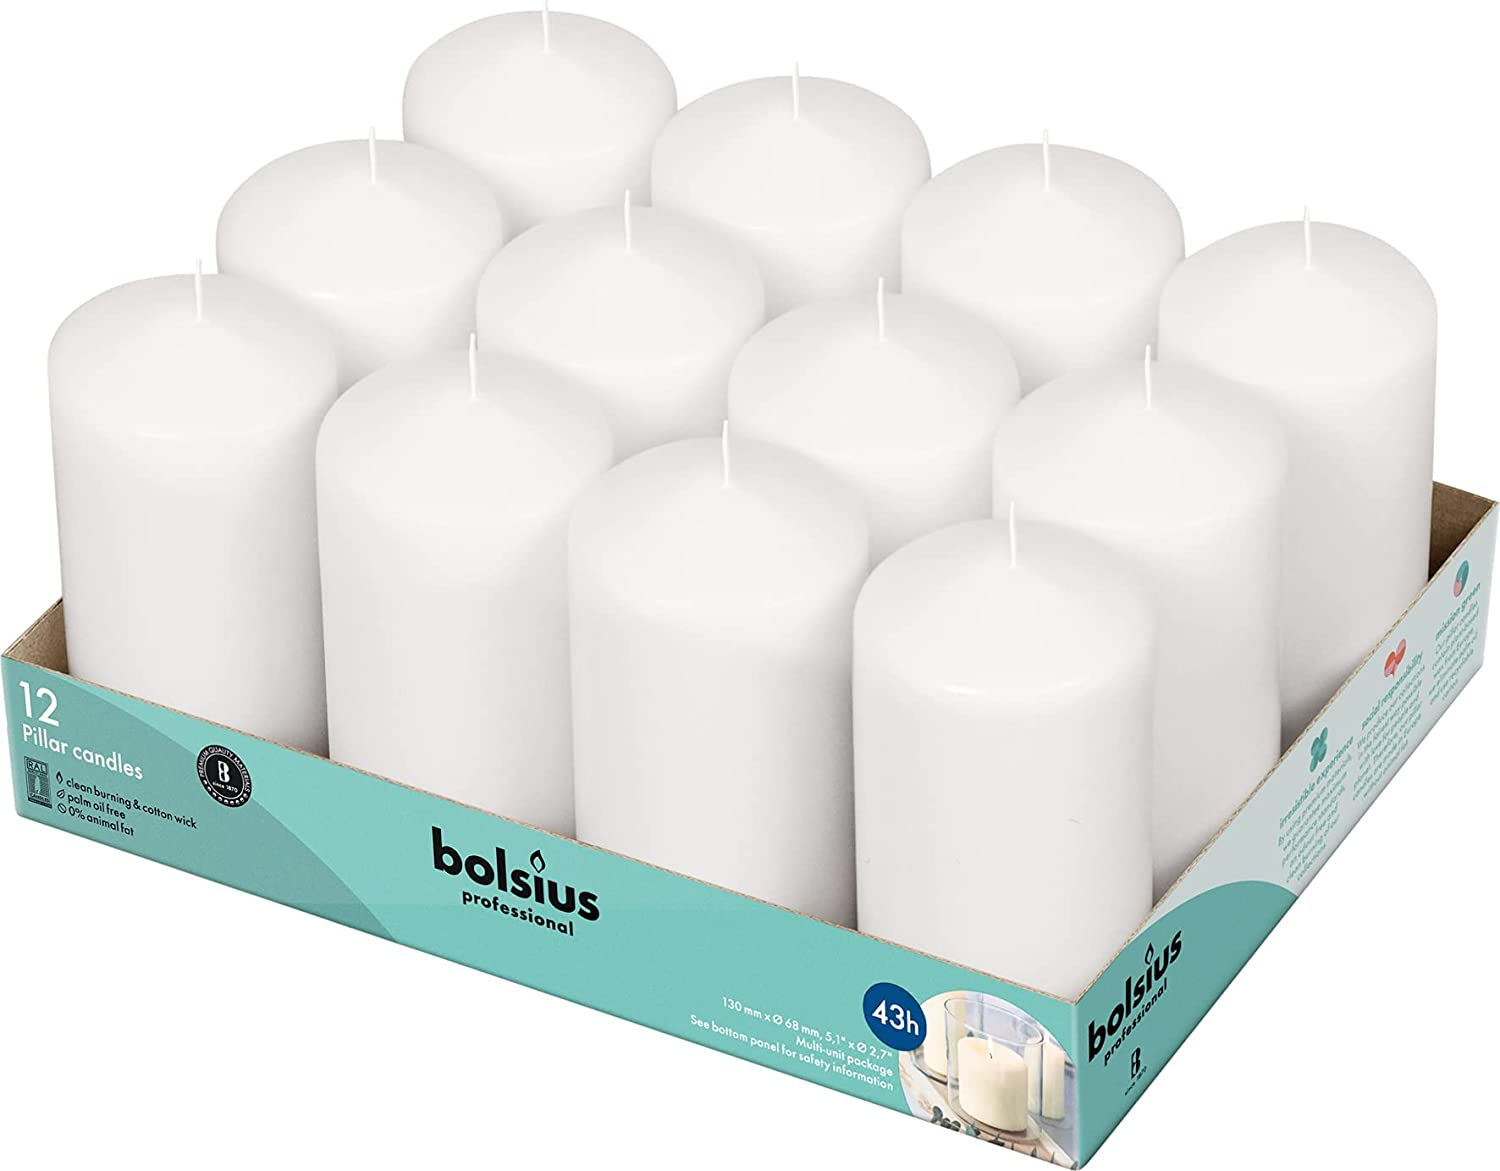 San Diego Mall BOLSIUS Set of 12 White Pillar Candles Unscented Import - 2.75-x 5-inch